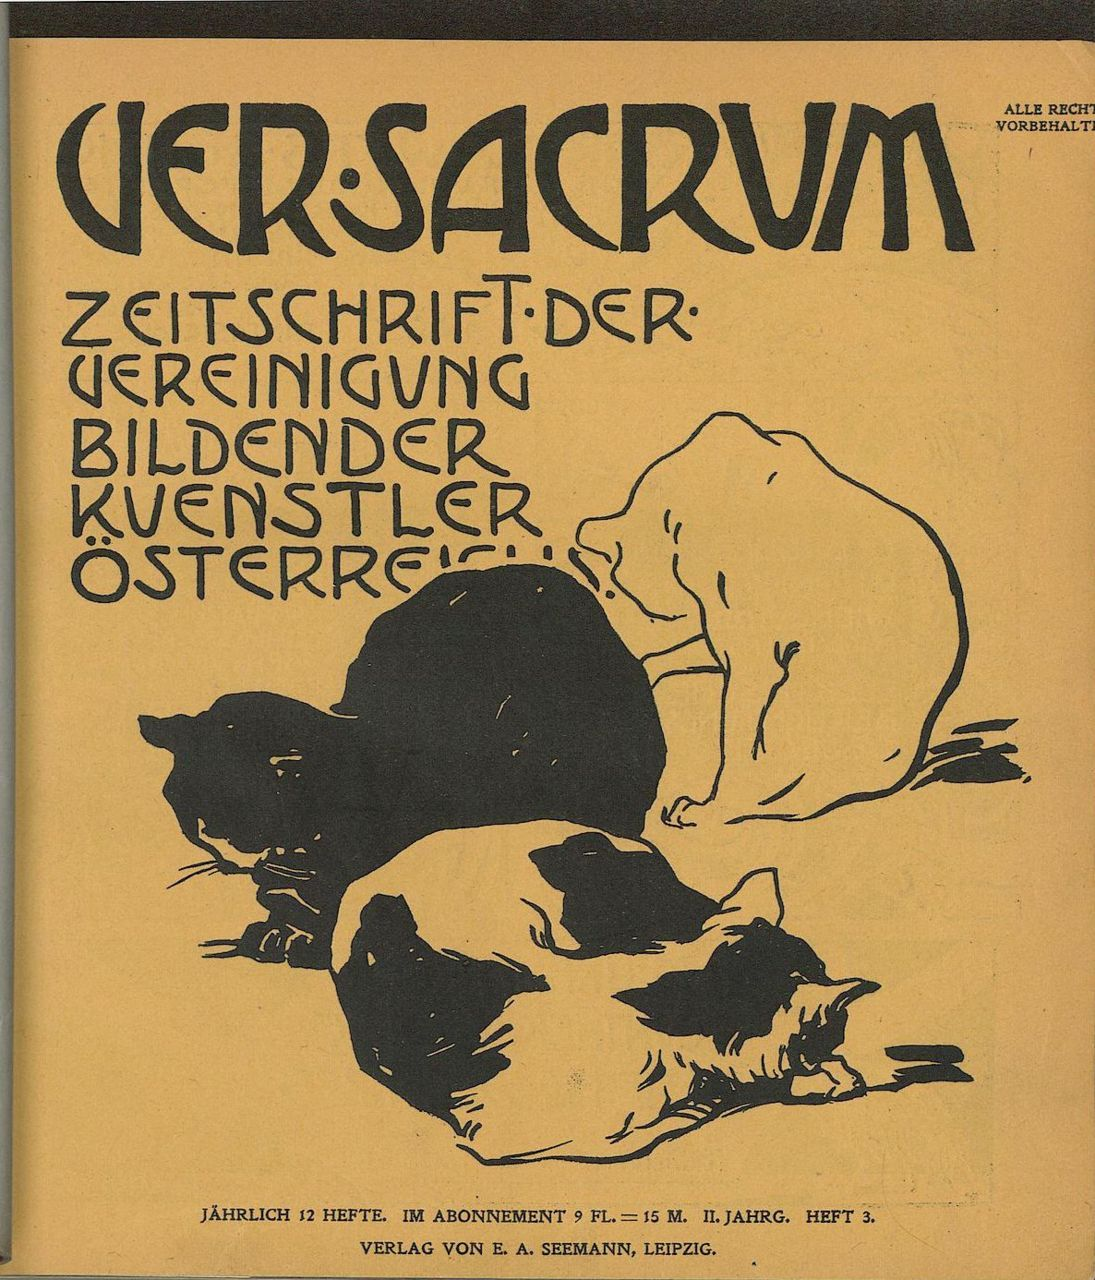 Ver Sacrum,1899 here secluded house—three cats get their shareof rice cakes Issa